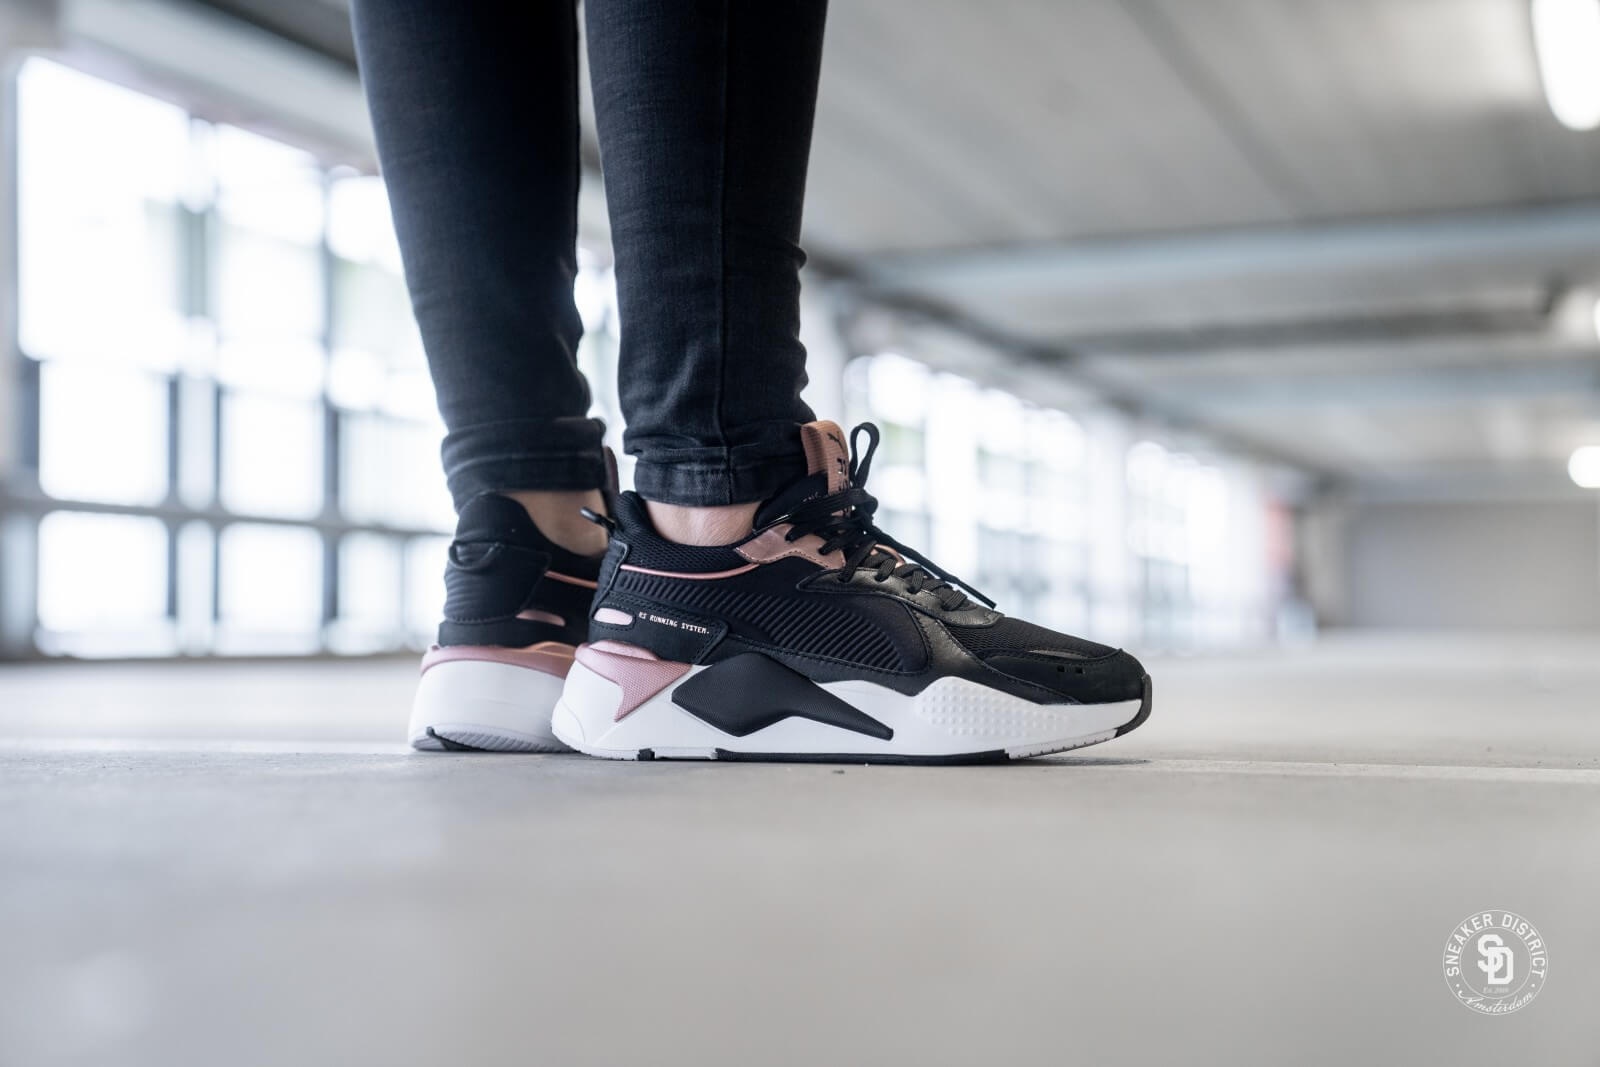 Puma RS X Trophy Puma BlackRose Gold 0369451 04